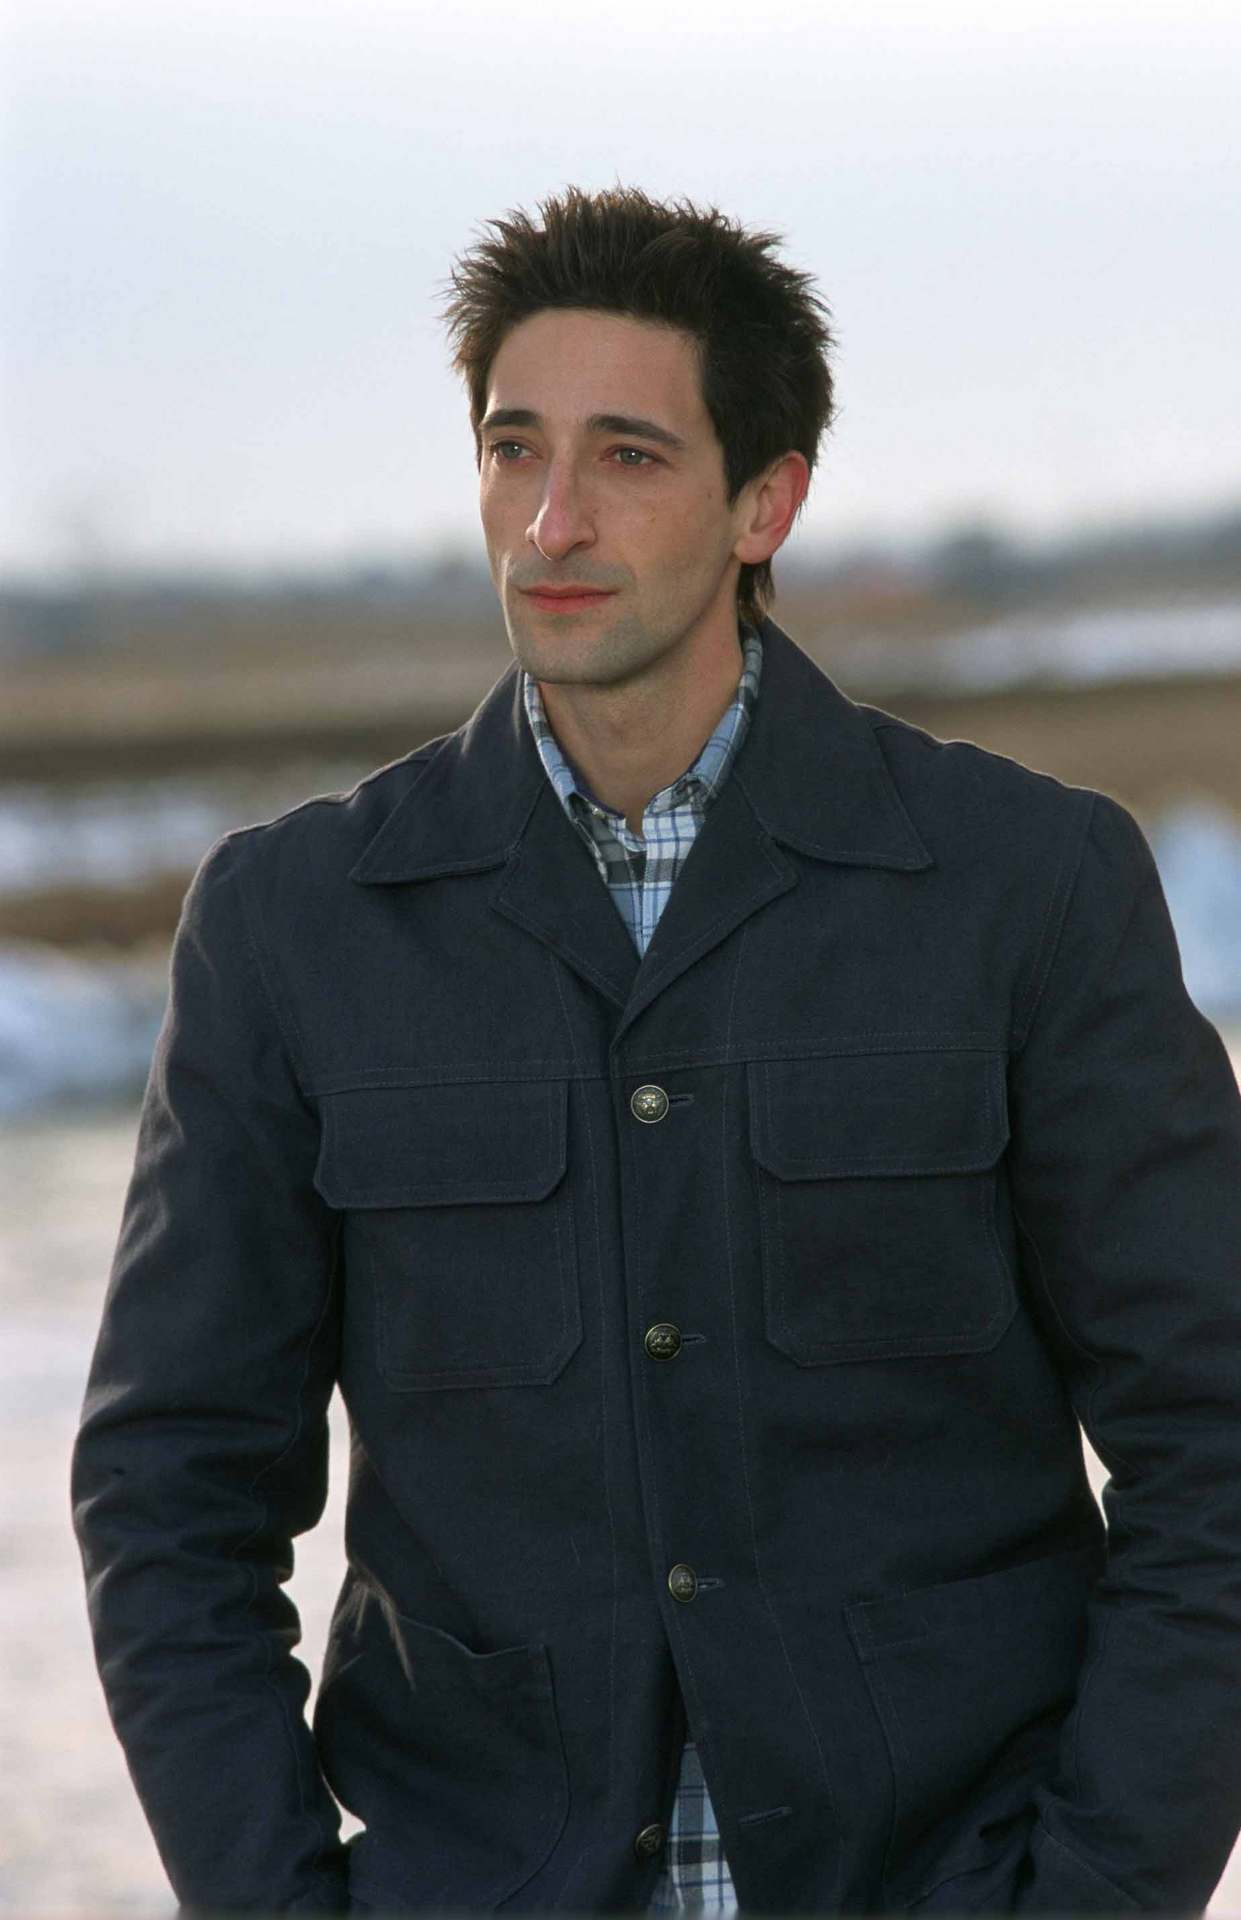 Adrien Brody - Images Gallery